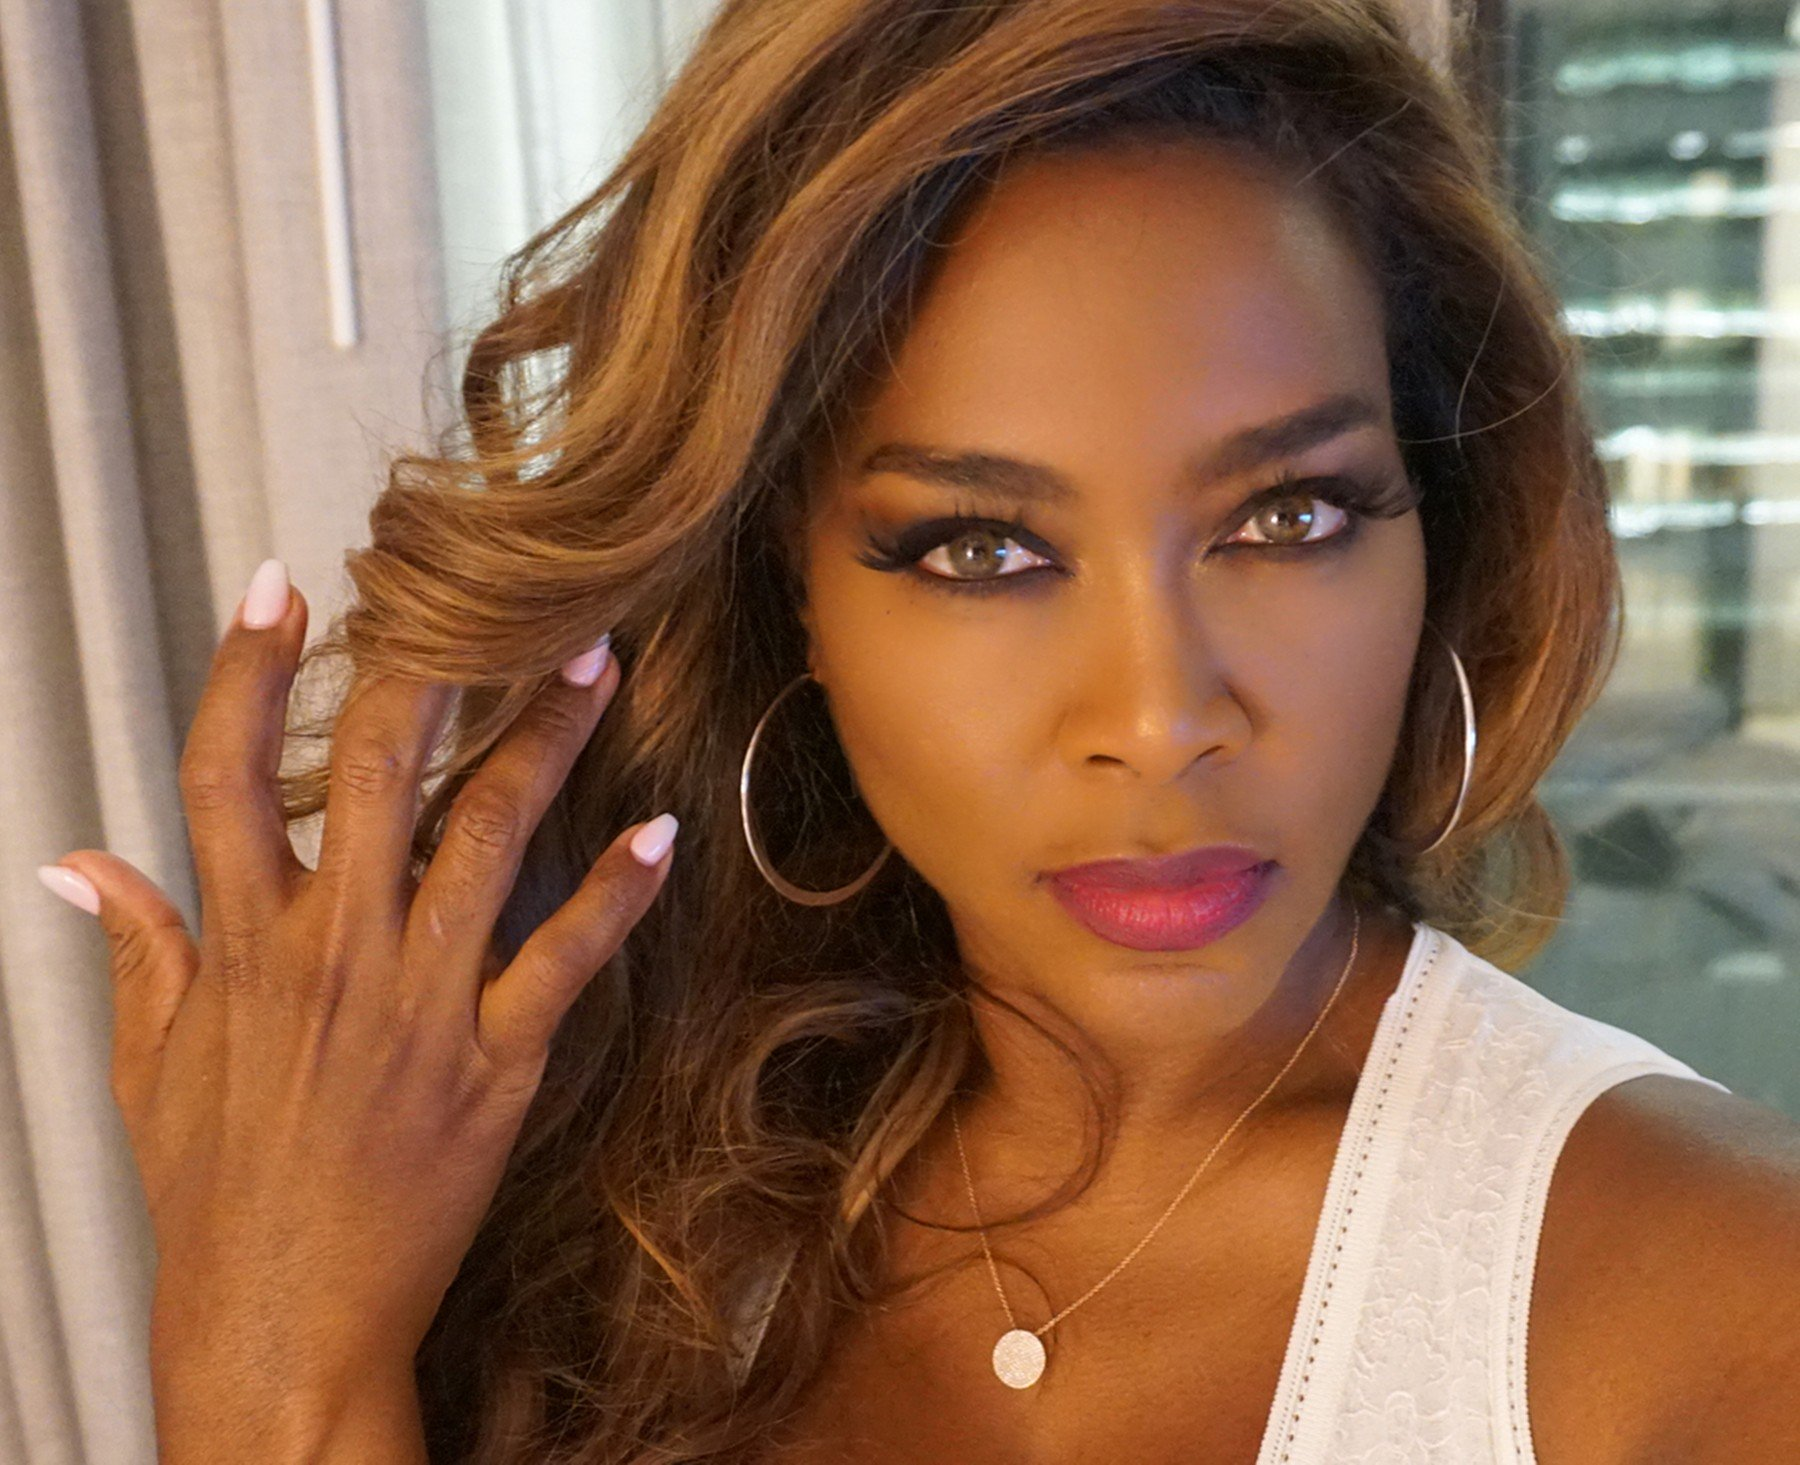 Kenya Moore's Throwback Photo With Tami Roman Has Fans In Awe